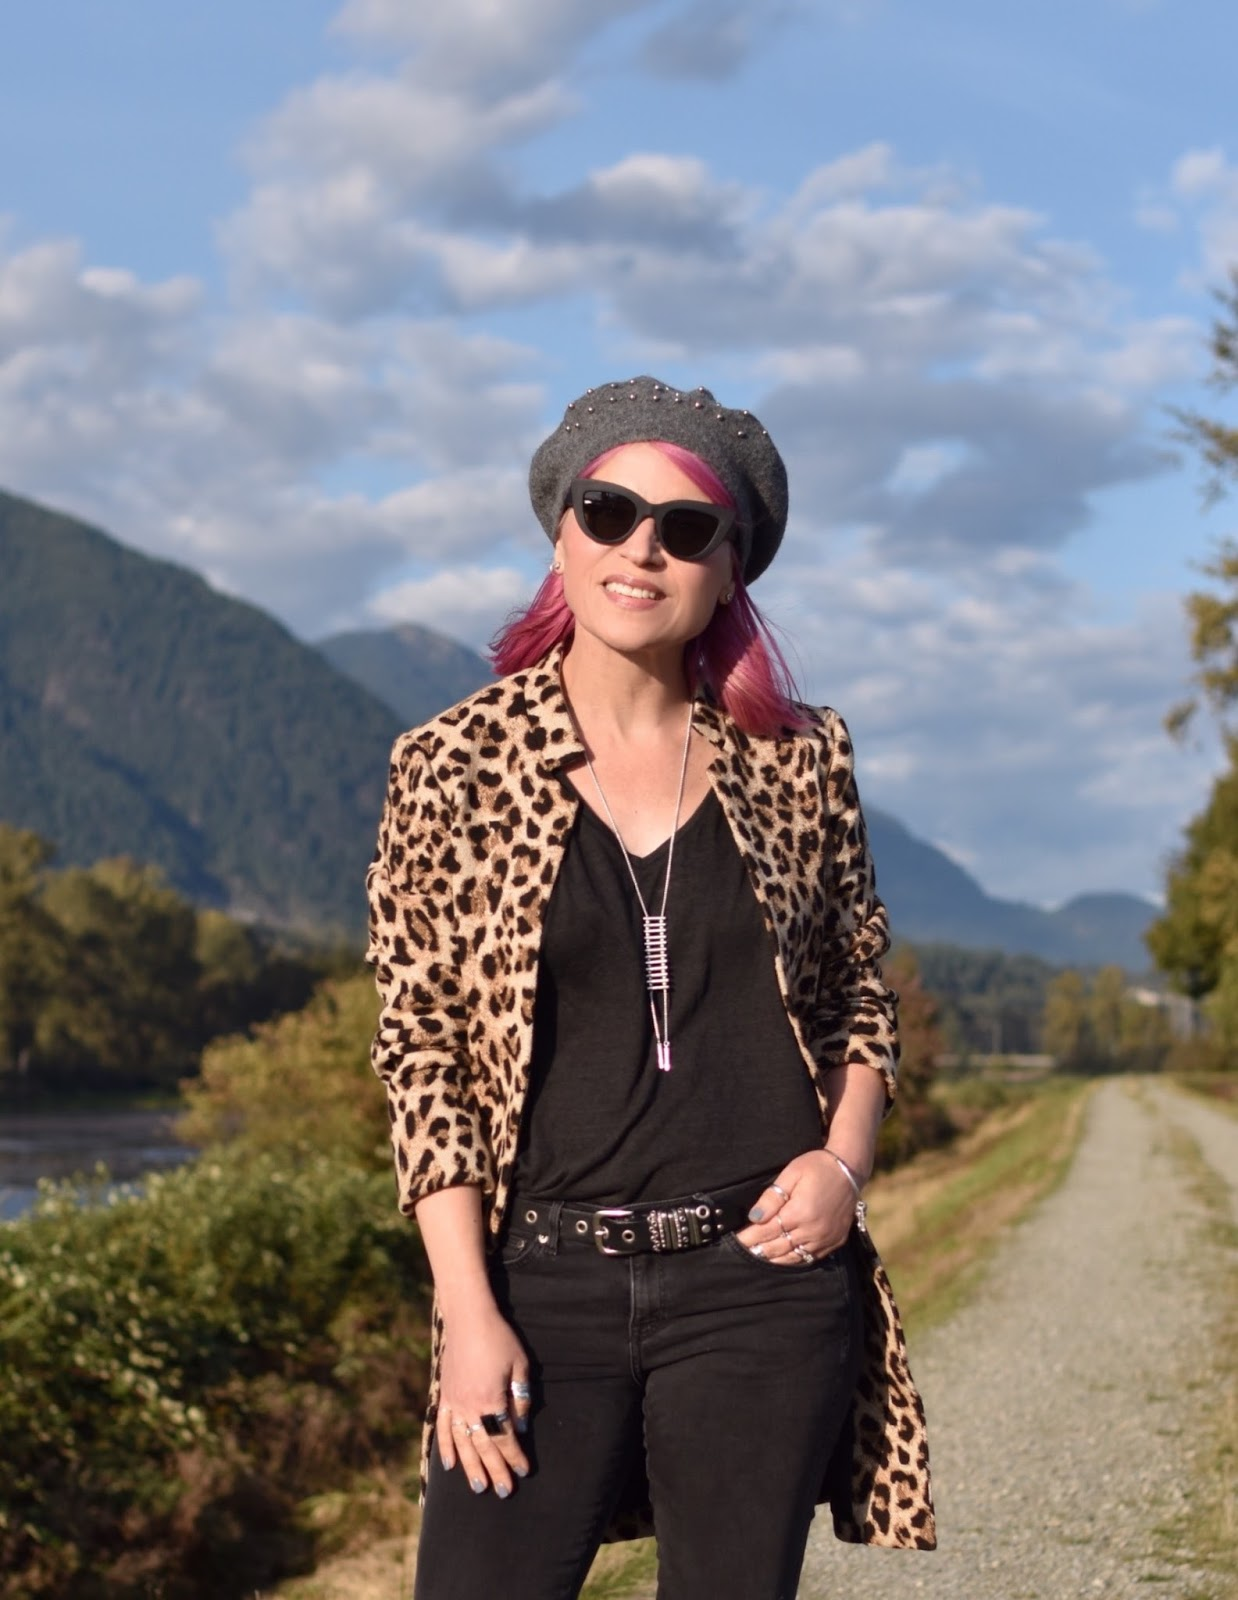 Monika Faulkner outfit inspiration - leopard-patterned coat, beaded beret, cat-eye sunglasses